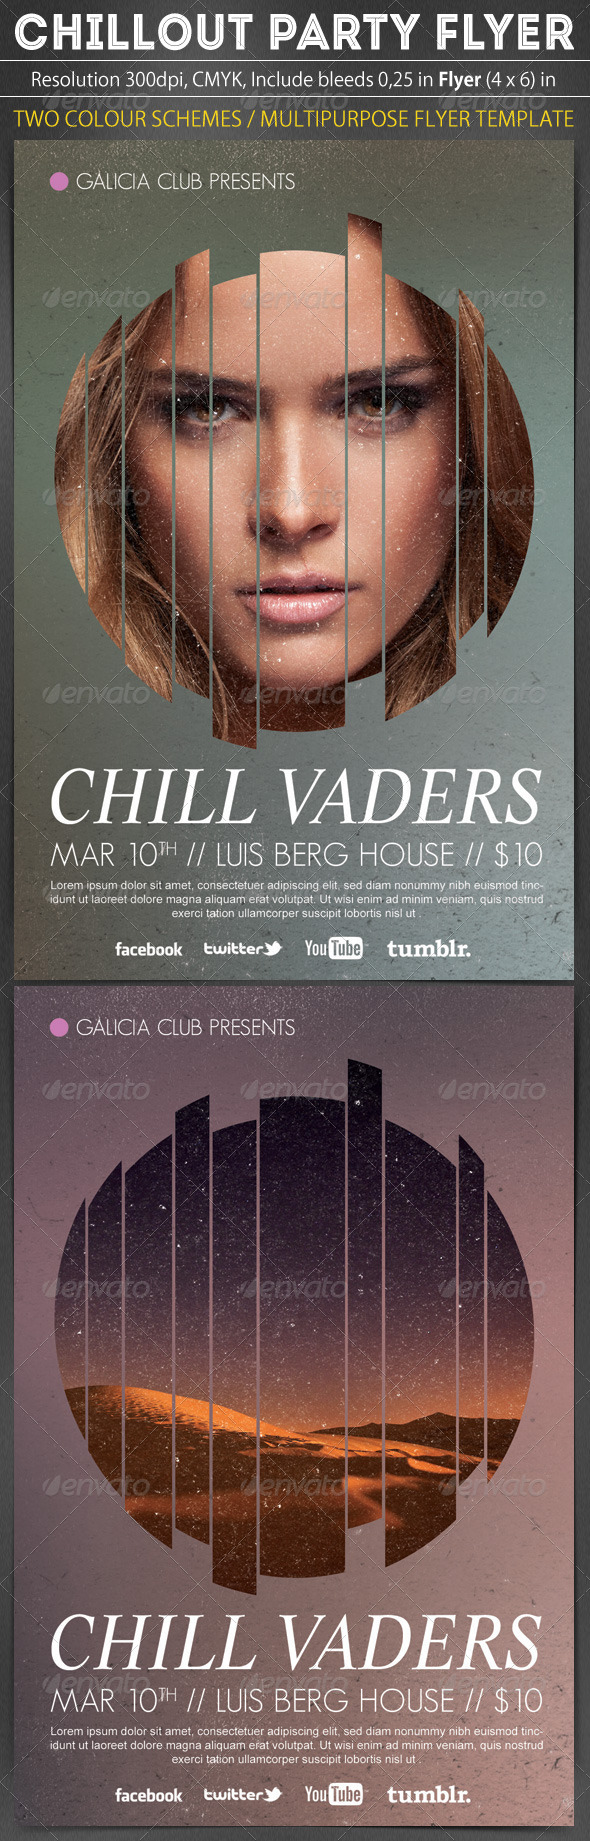 Chillout Party Flyer Template - Clubs & Parties Events